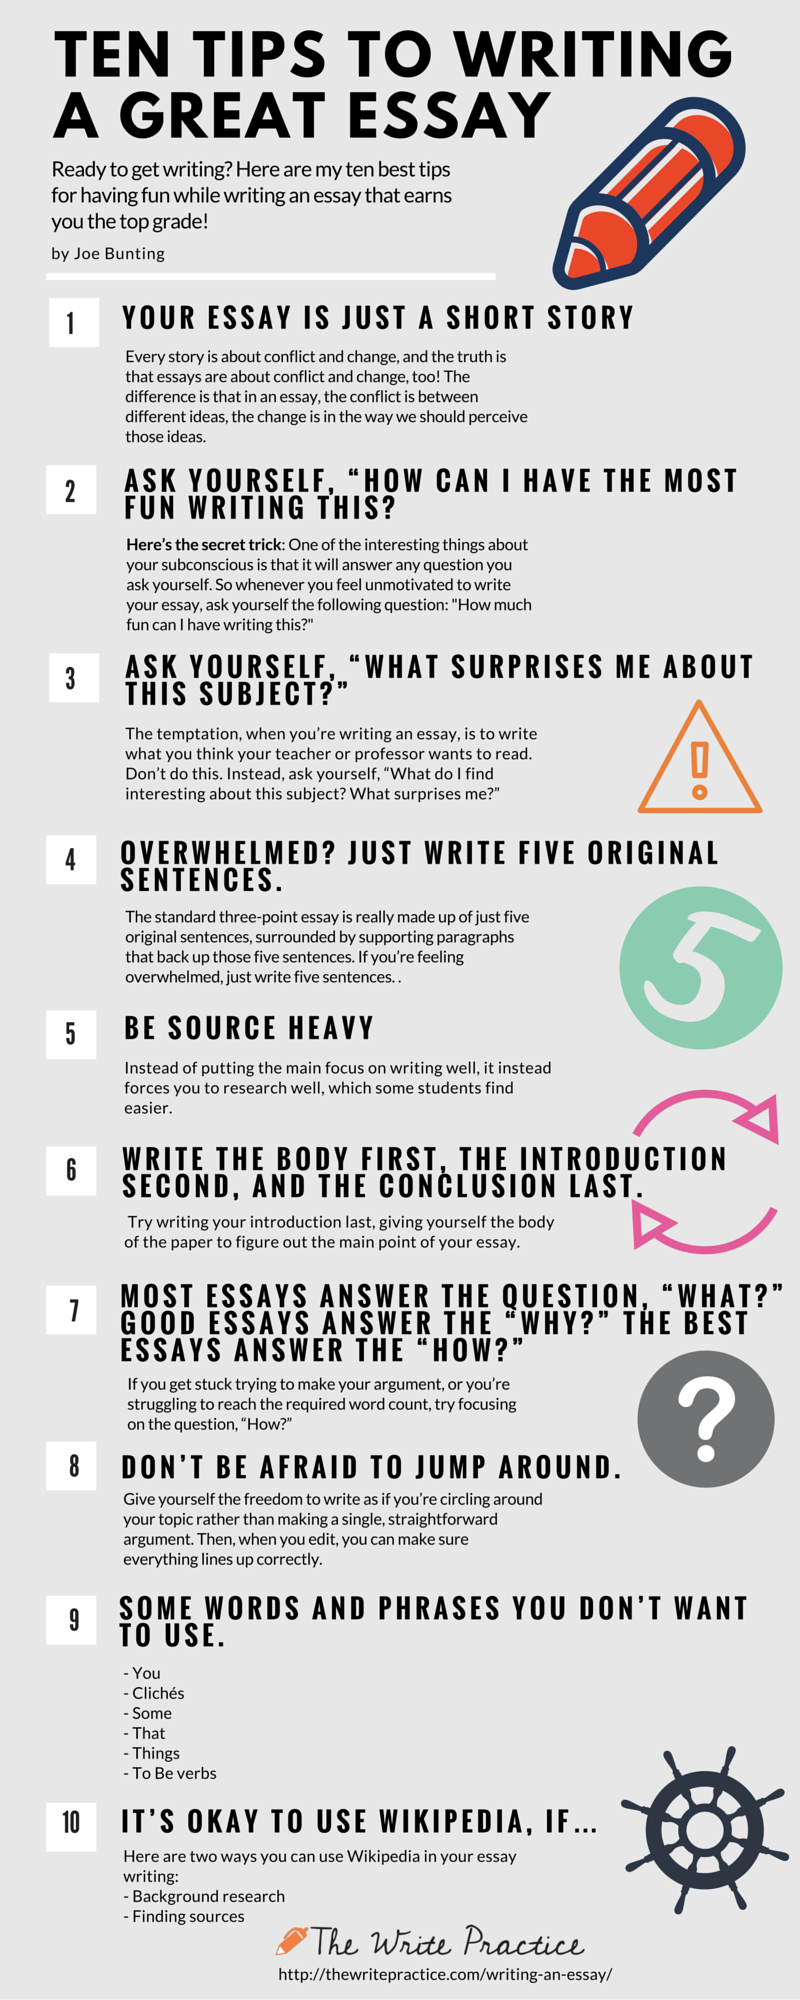 7 Rules for Writing Short Films